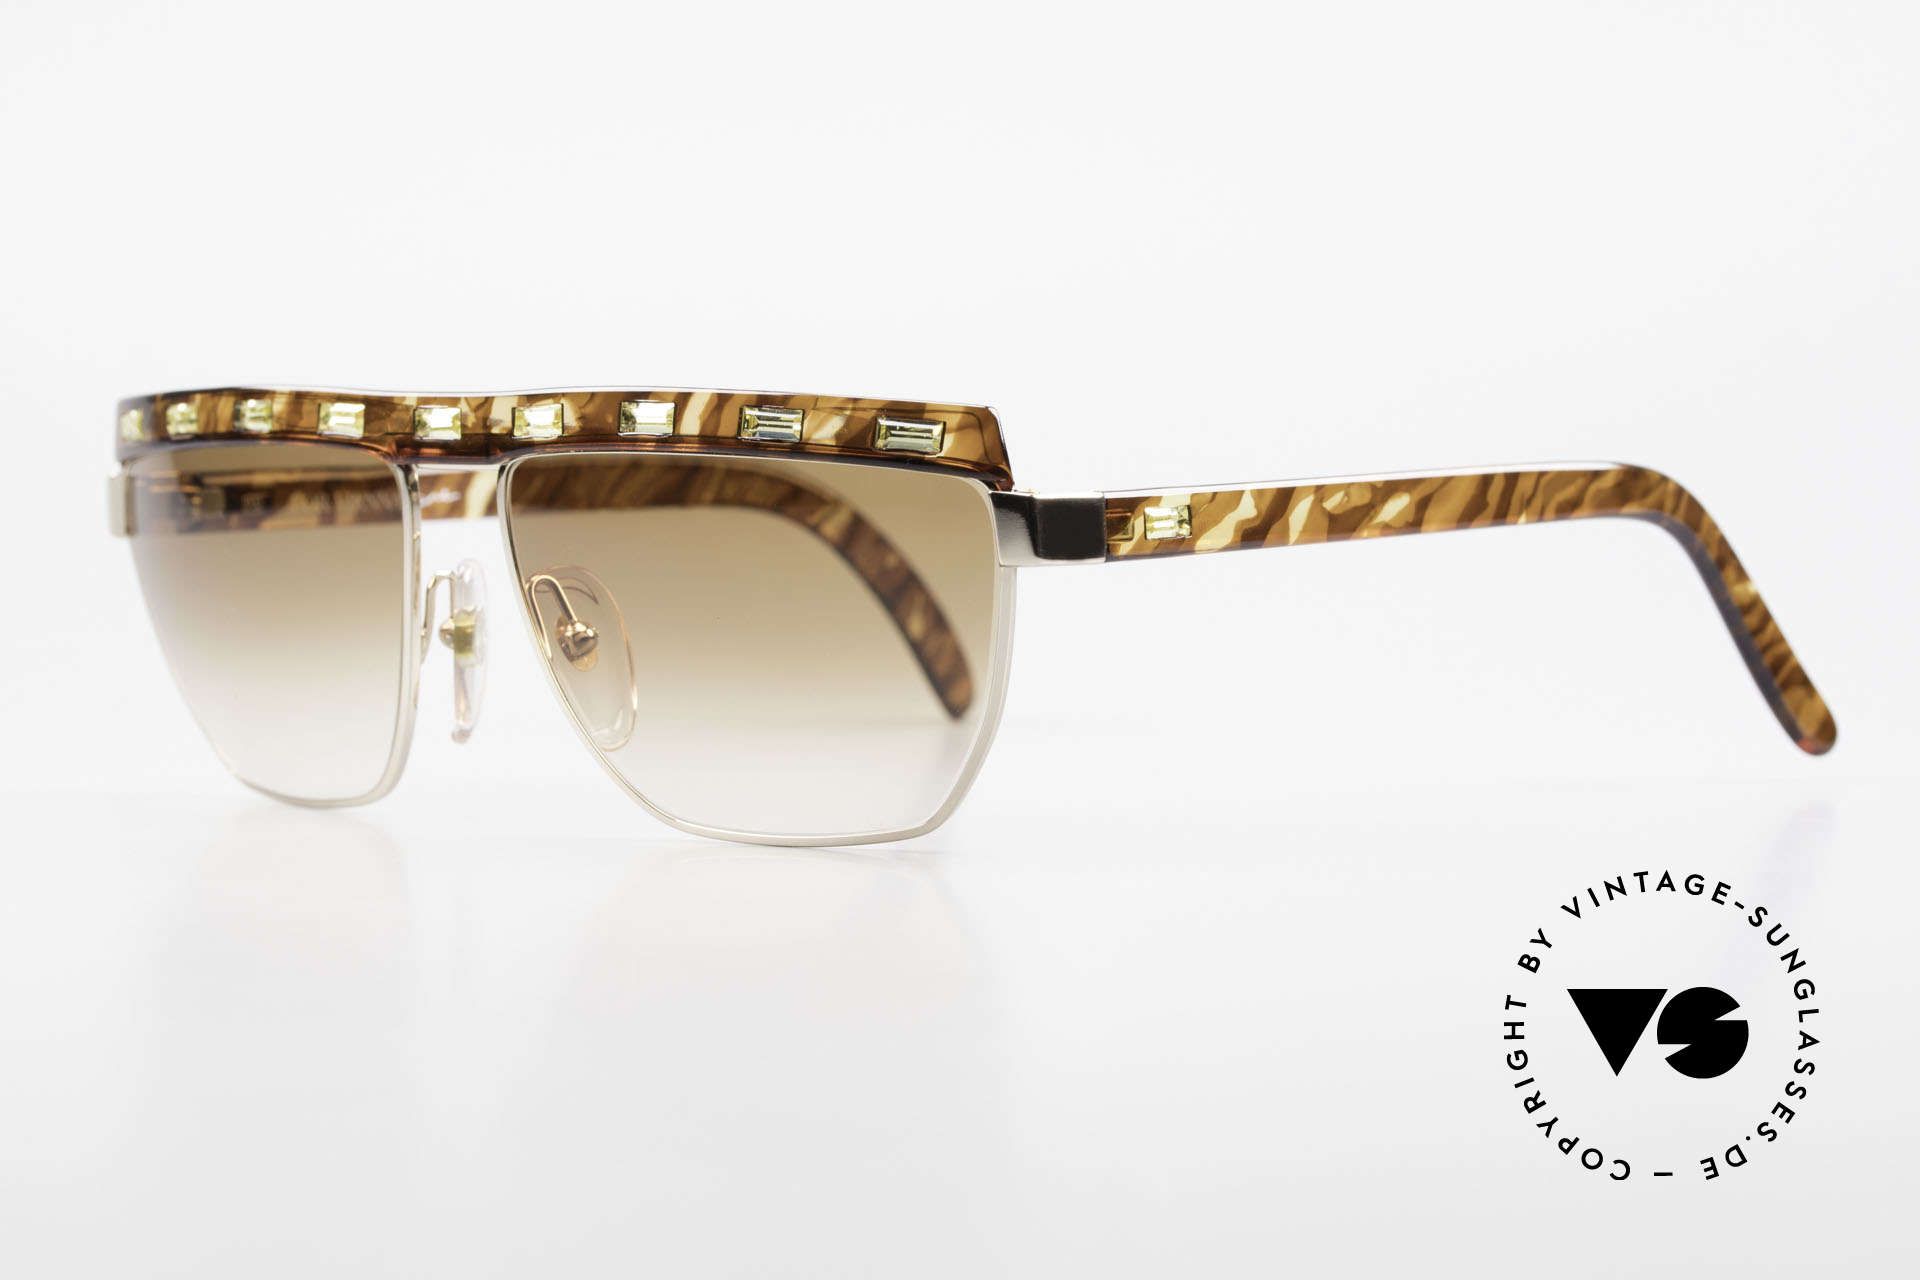 Paloma Picasso 3706 Ladies Gem Sunglasses 90's, in 1990, Paloma created these beautiful sunglasses, Made for Women